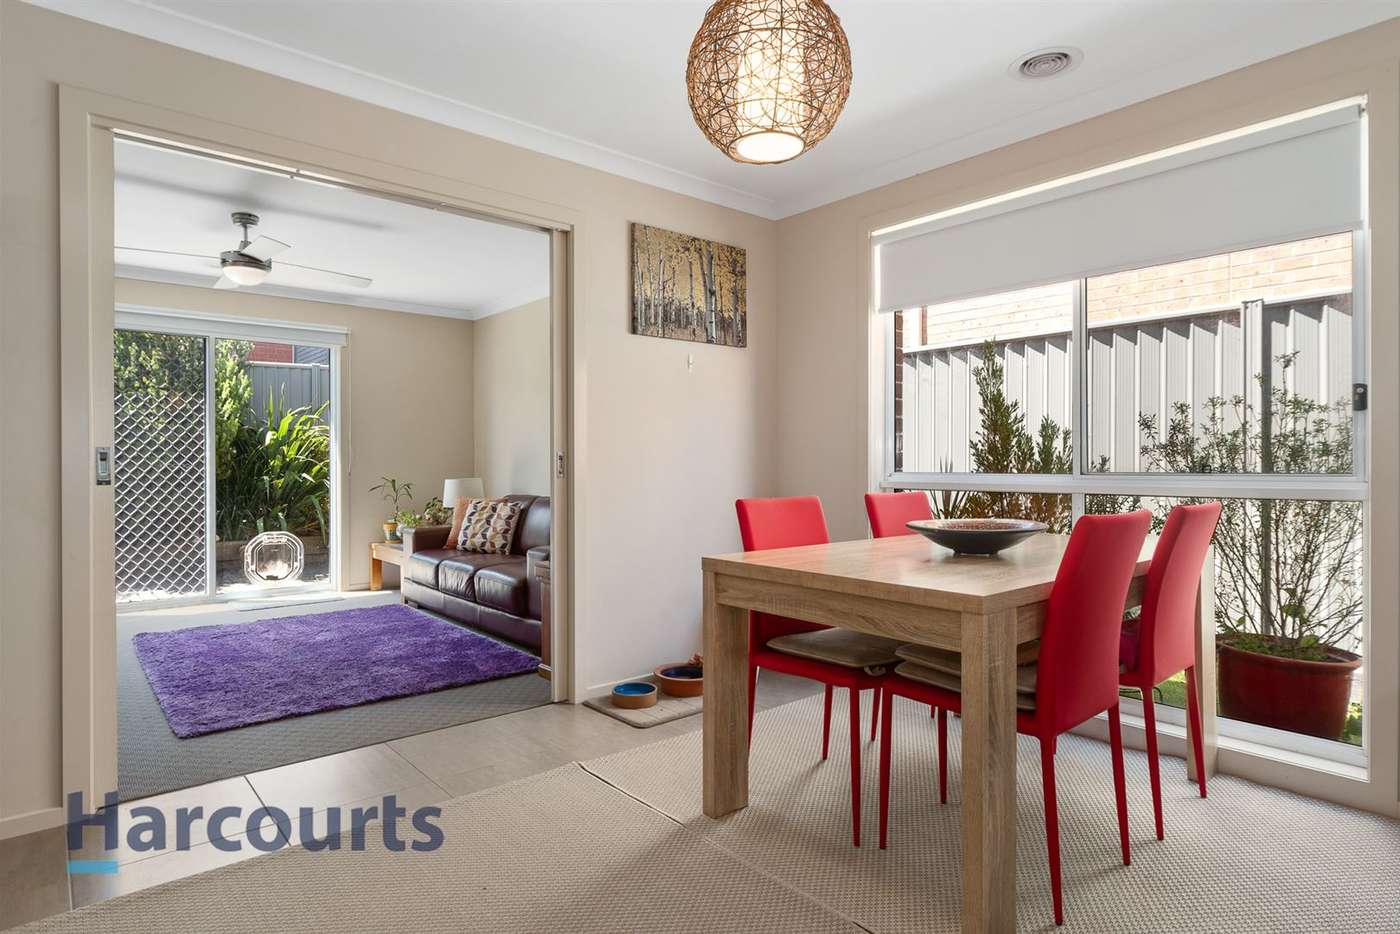 Fifth view of Homely house listing, 6 Wattlewoods Place, Carrum Downs VIC 3201